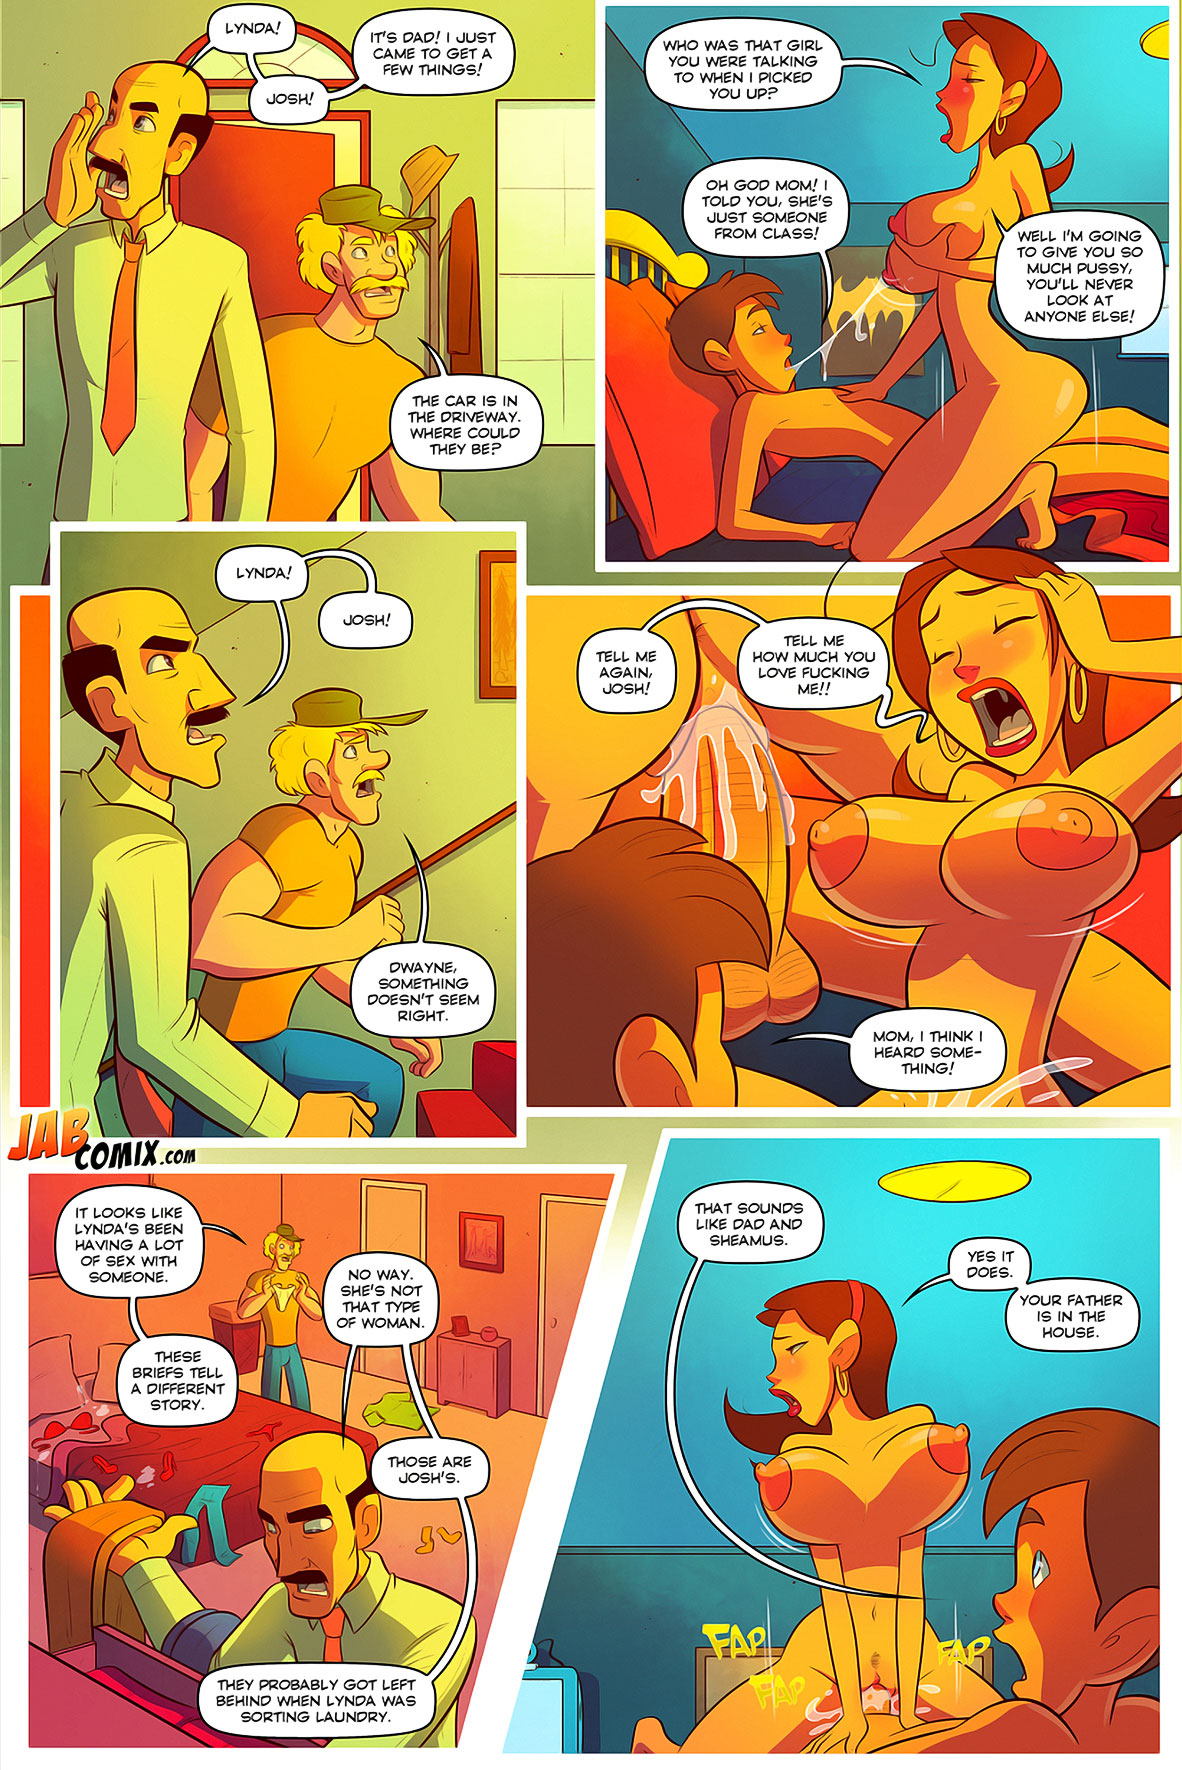 Jab comic Keeping it up with the Joneses 3 - page 1